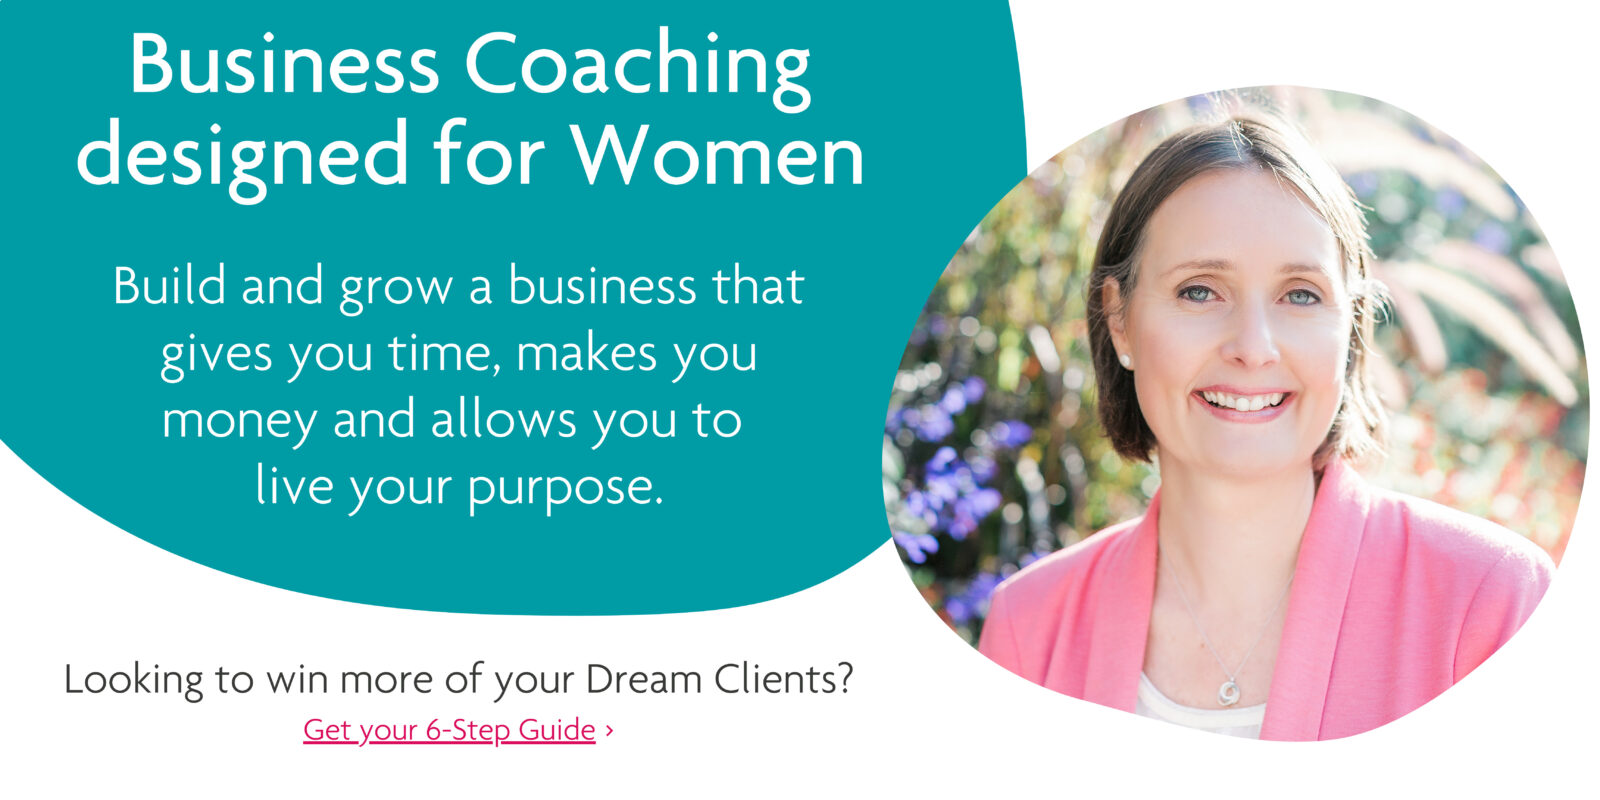 Melitta Campbell. Business Coaching designed for Women. Build and grow a business that gives you time, makes you money and allows you to live your purpose.